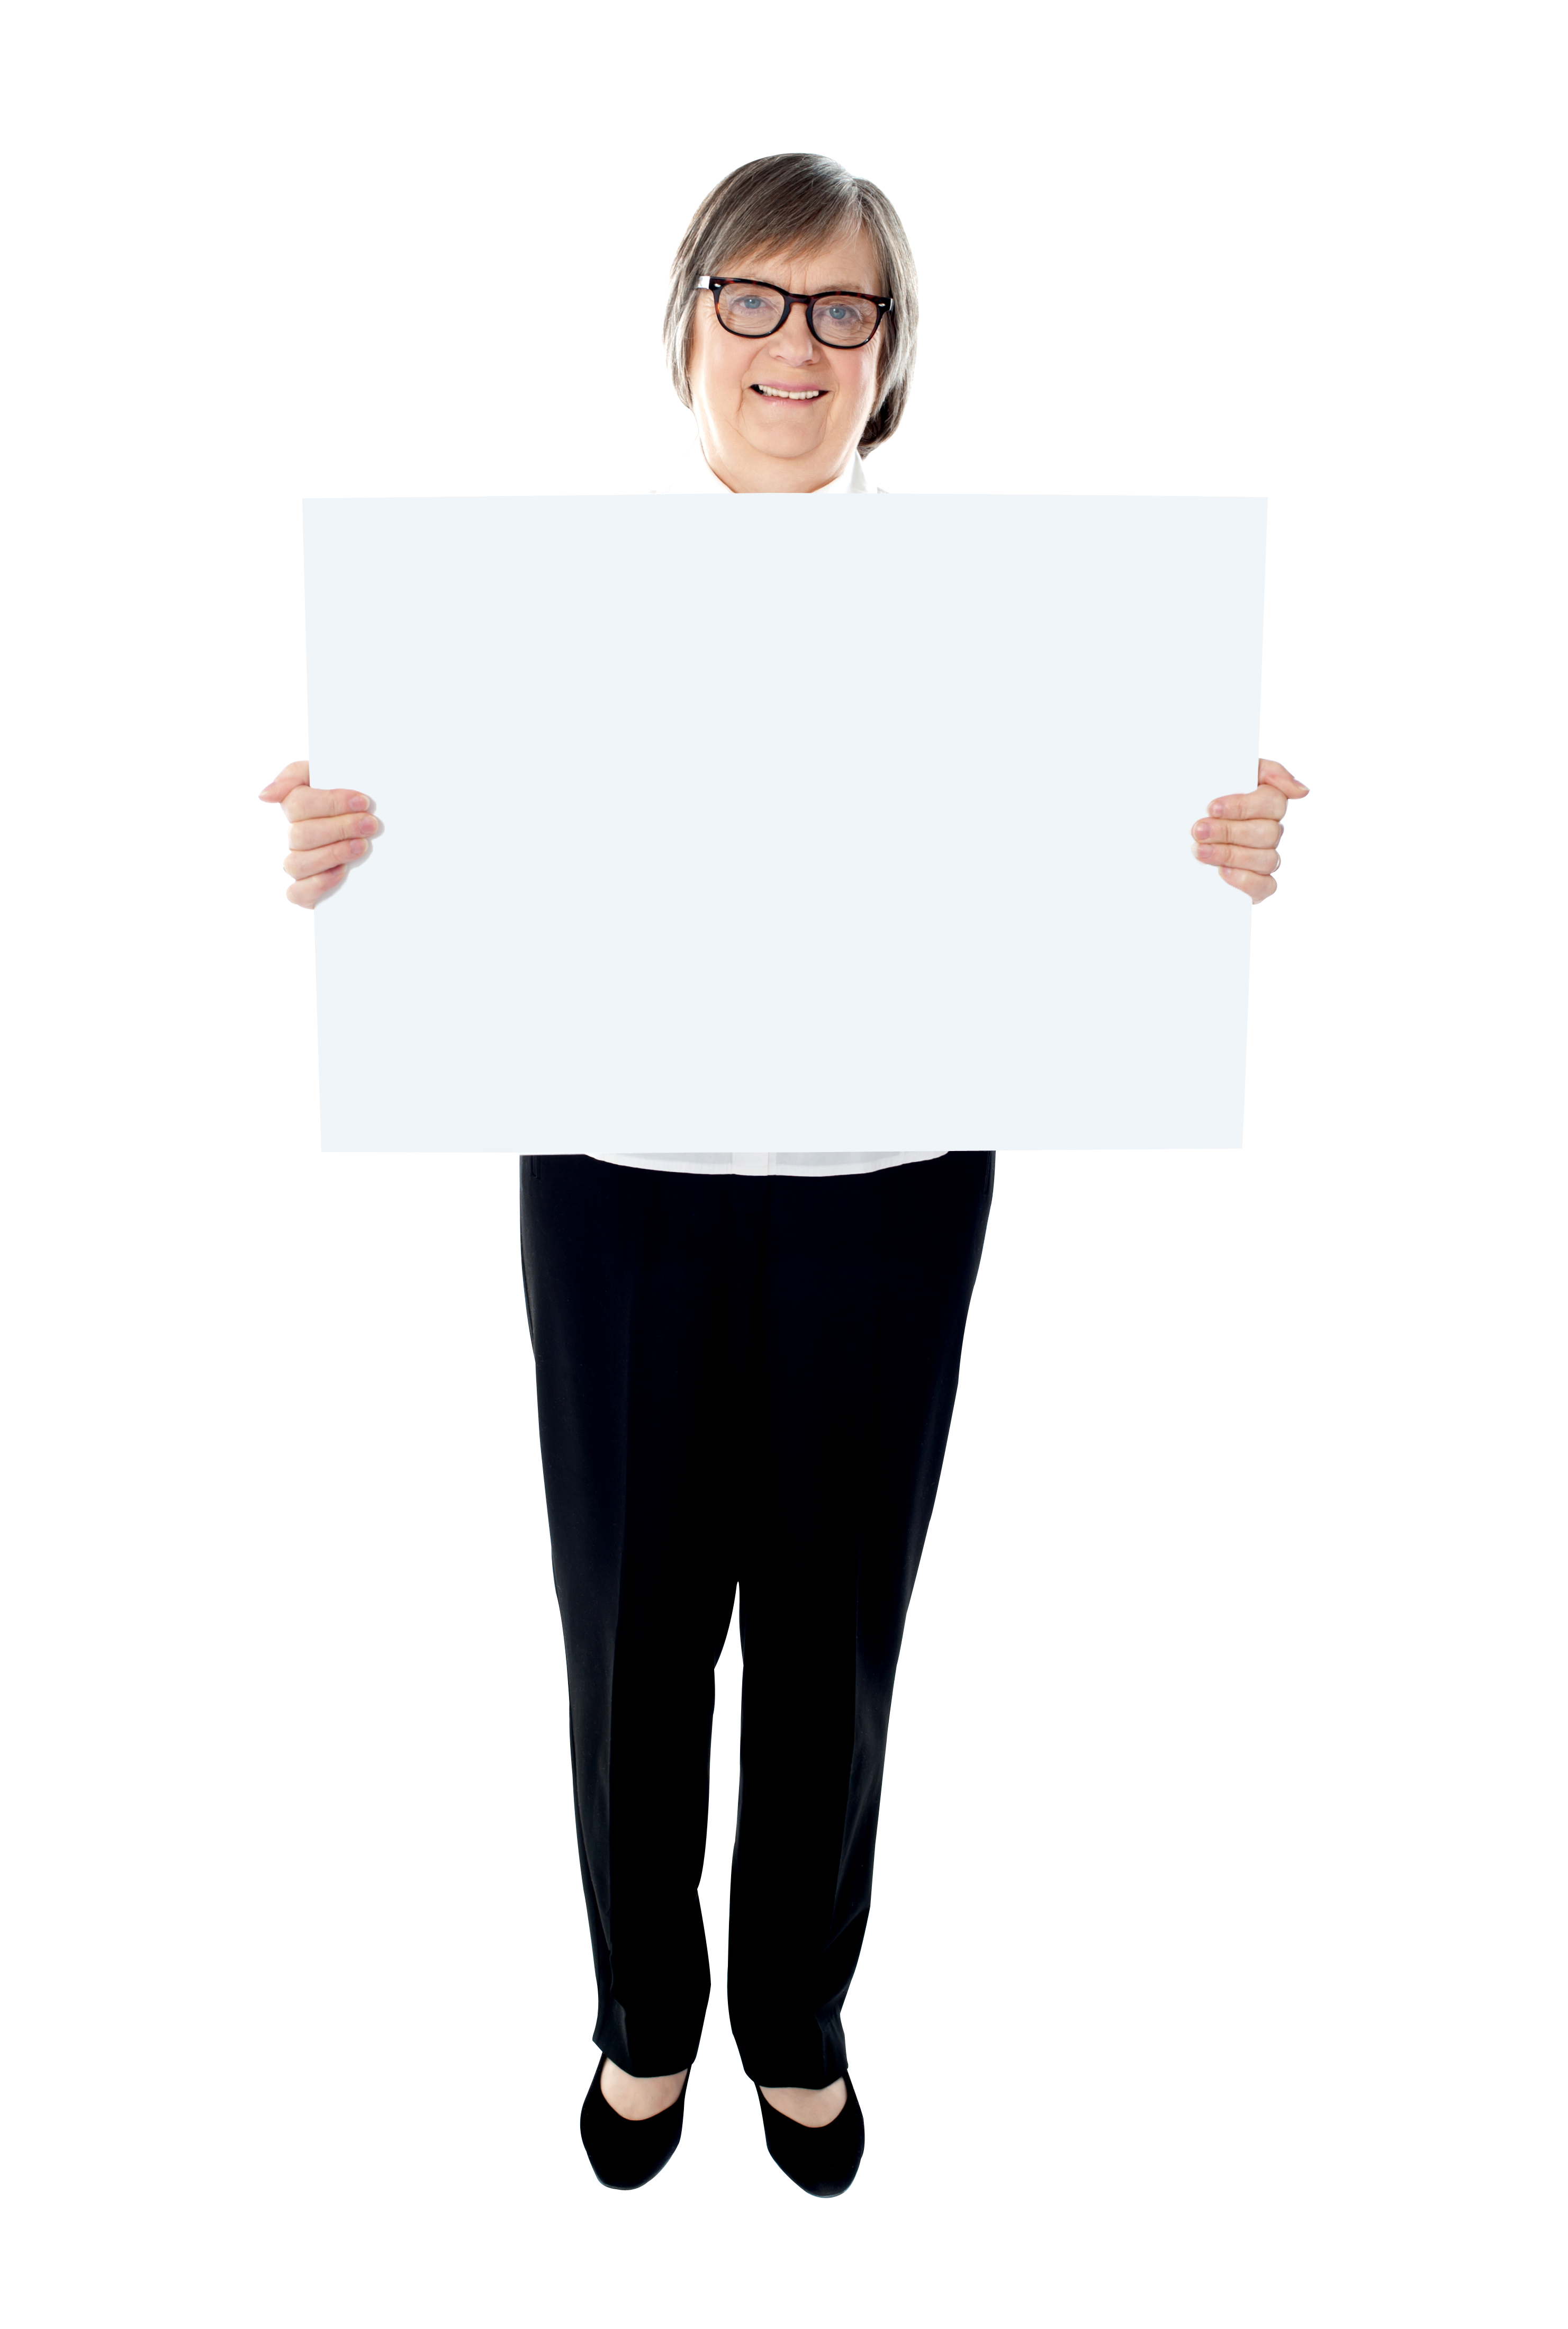 Old Women Holding Banner PNG Image